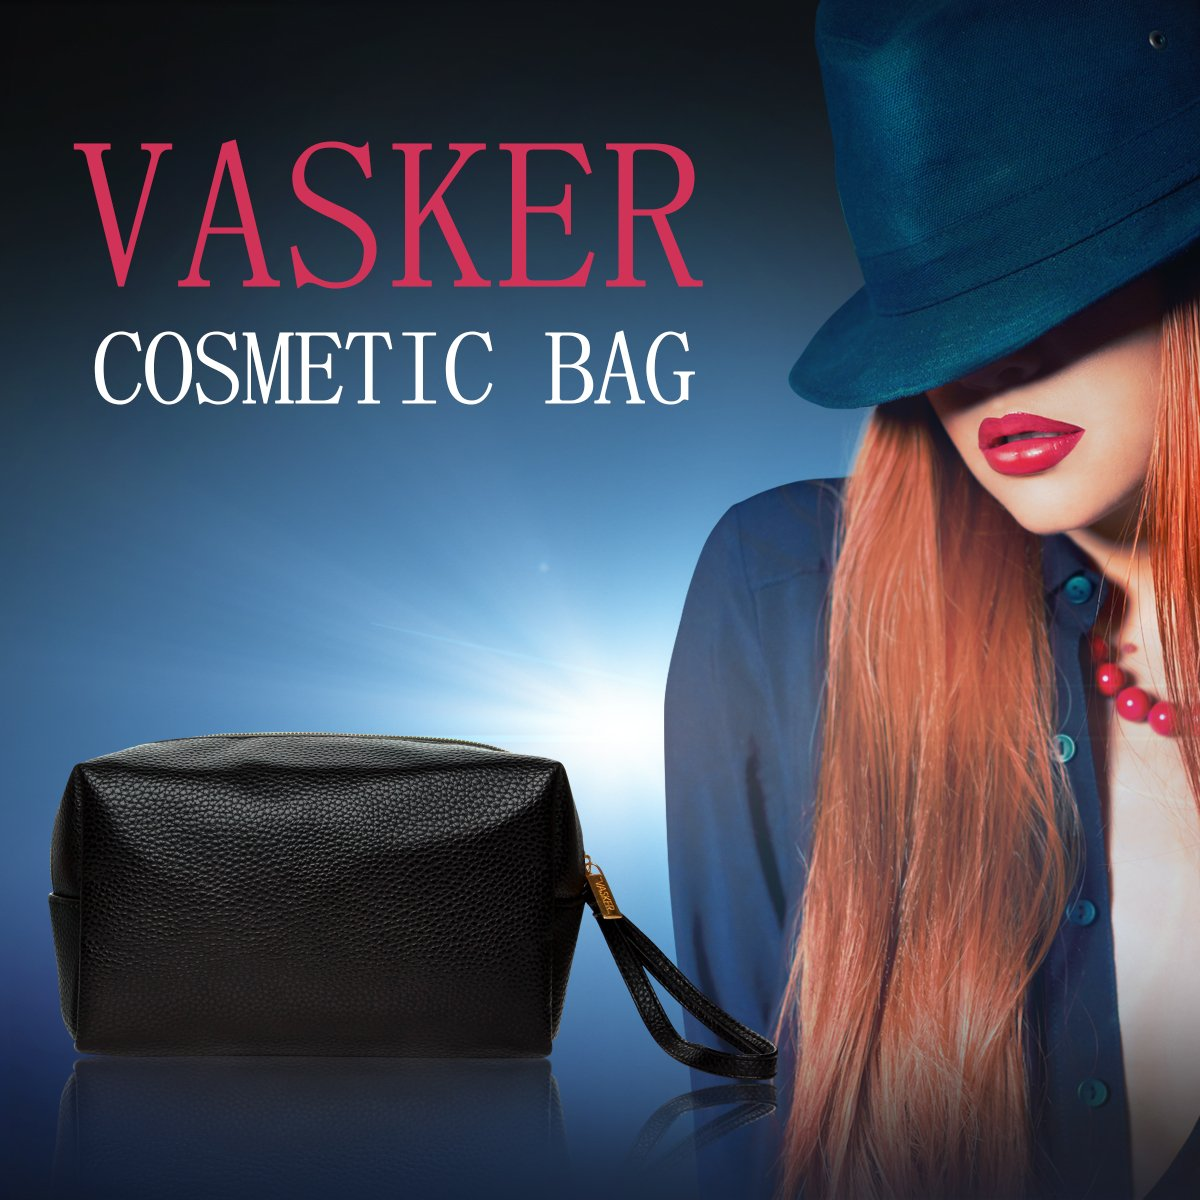 VASKER PU Leather Makeup Bag Handy Cosmetic Pouch Travel Portable Handbag Purse Toiletry Storage Bag Large Organizer with Zipper Women by VASKER (Image #7)